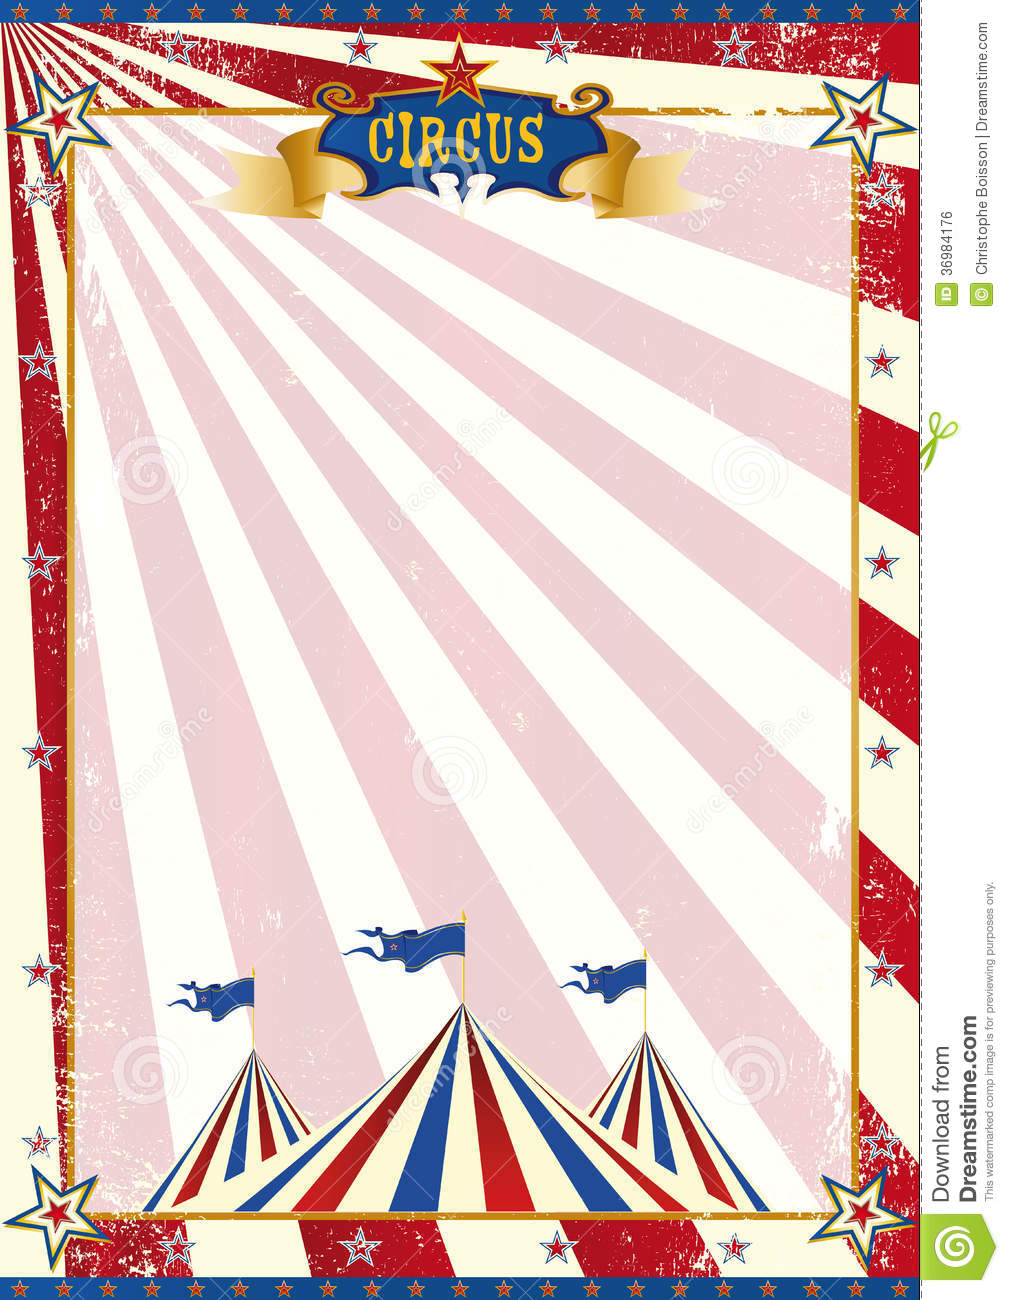 Vintage Circus Poster Background American Circus Grunge...